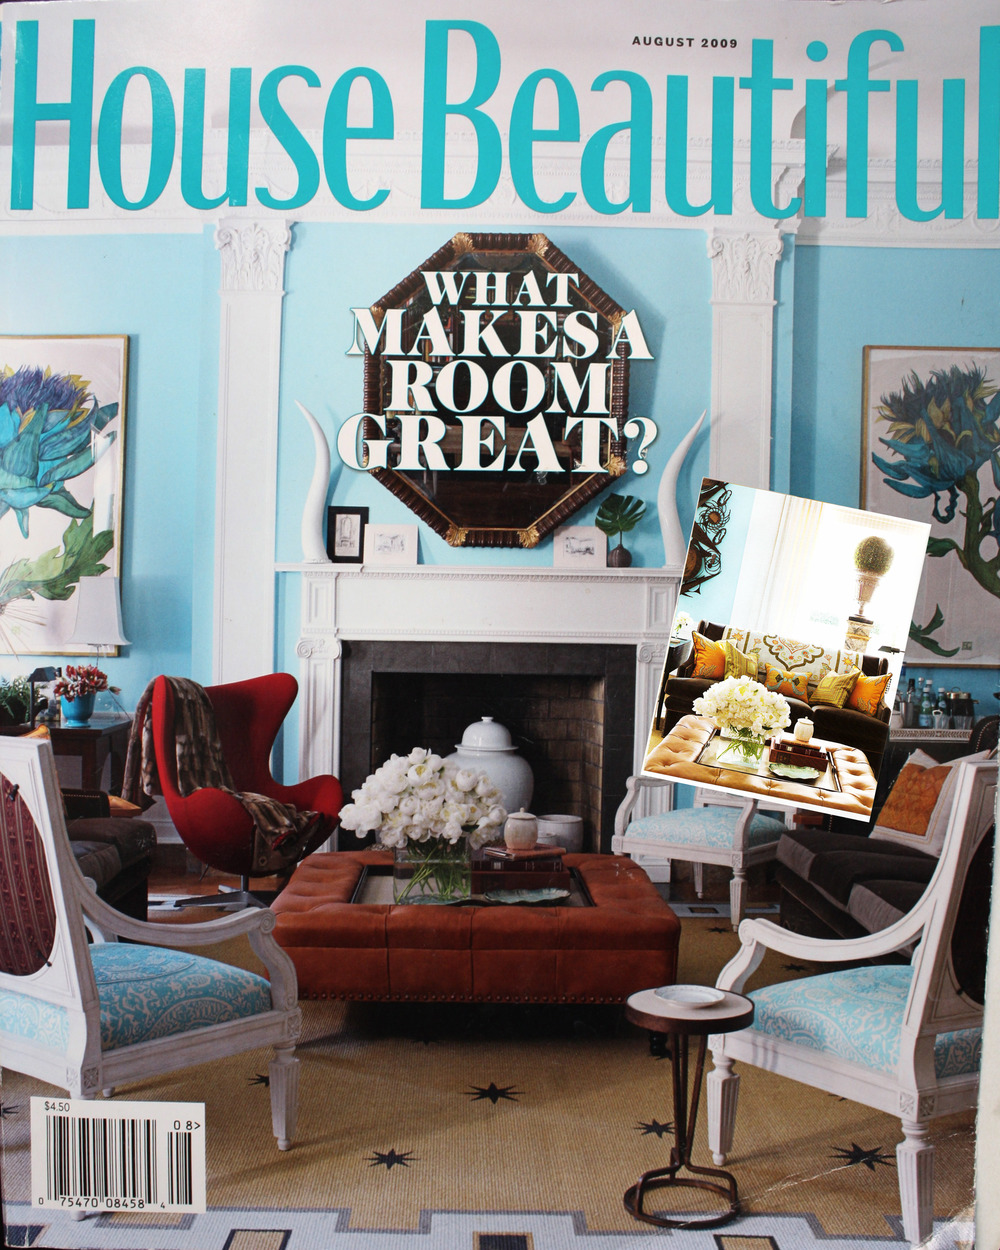 <b>House Beautiful</b><br/>What Makes a Room Great